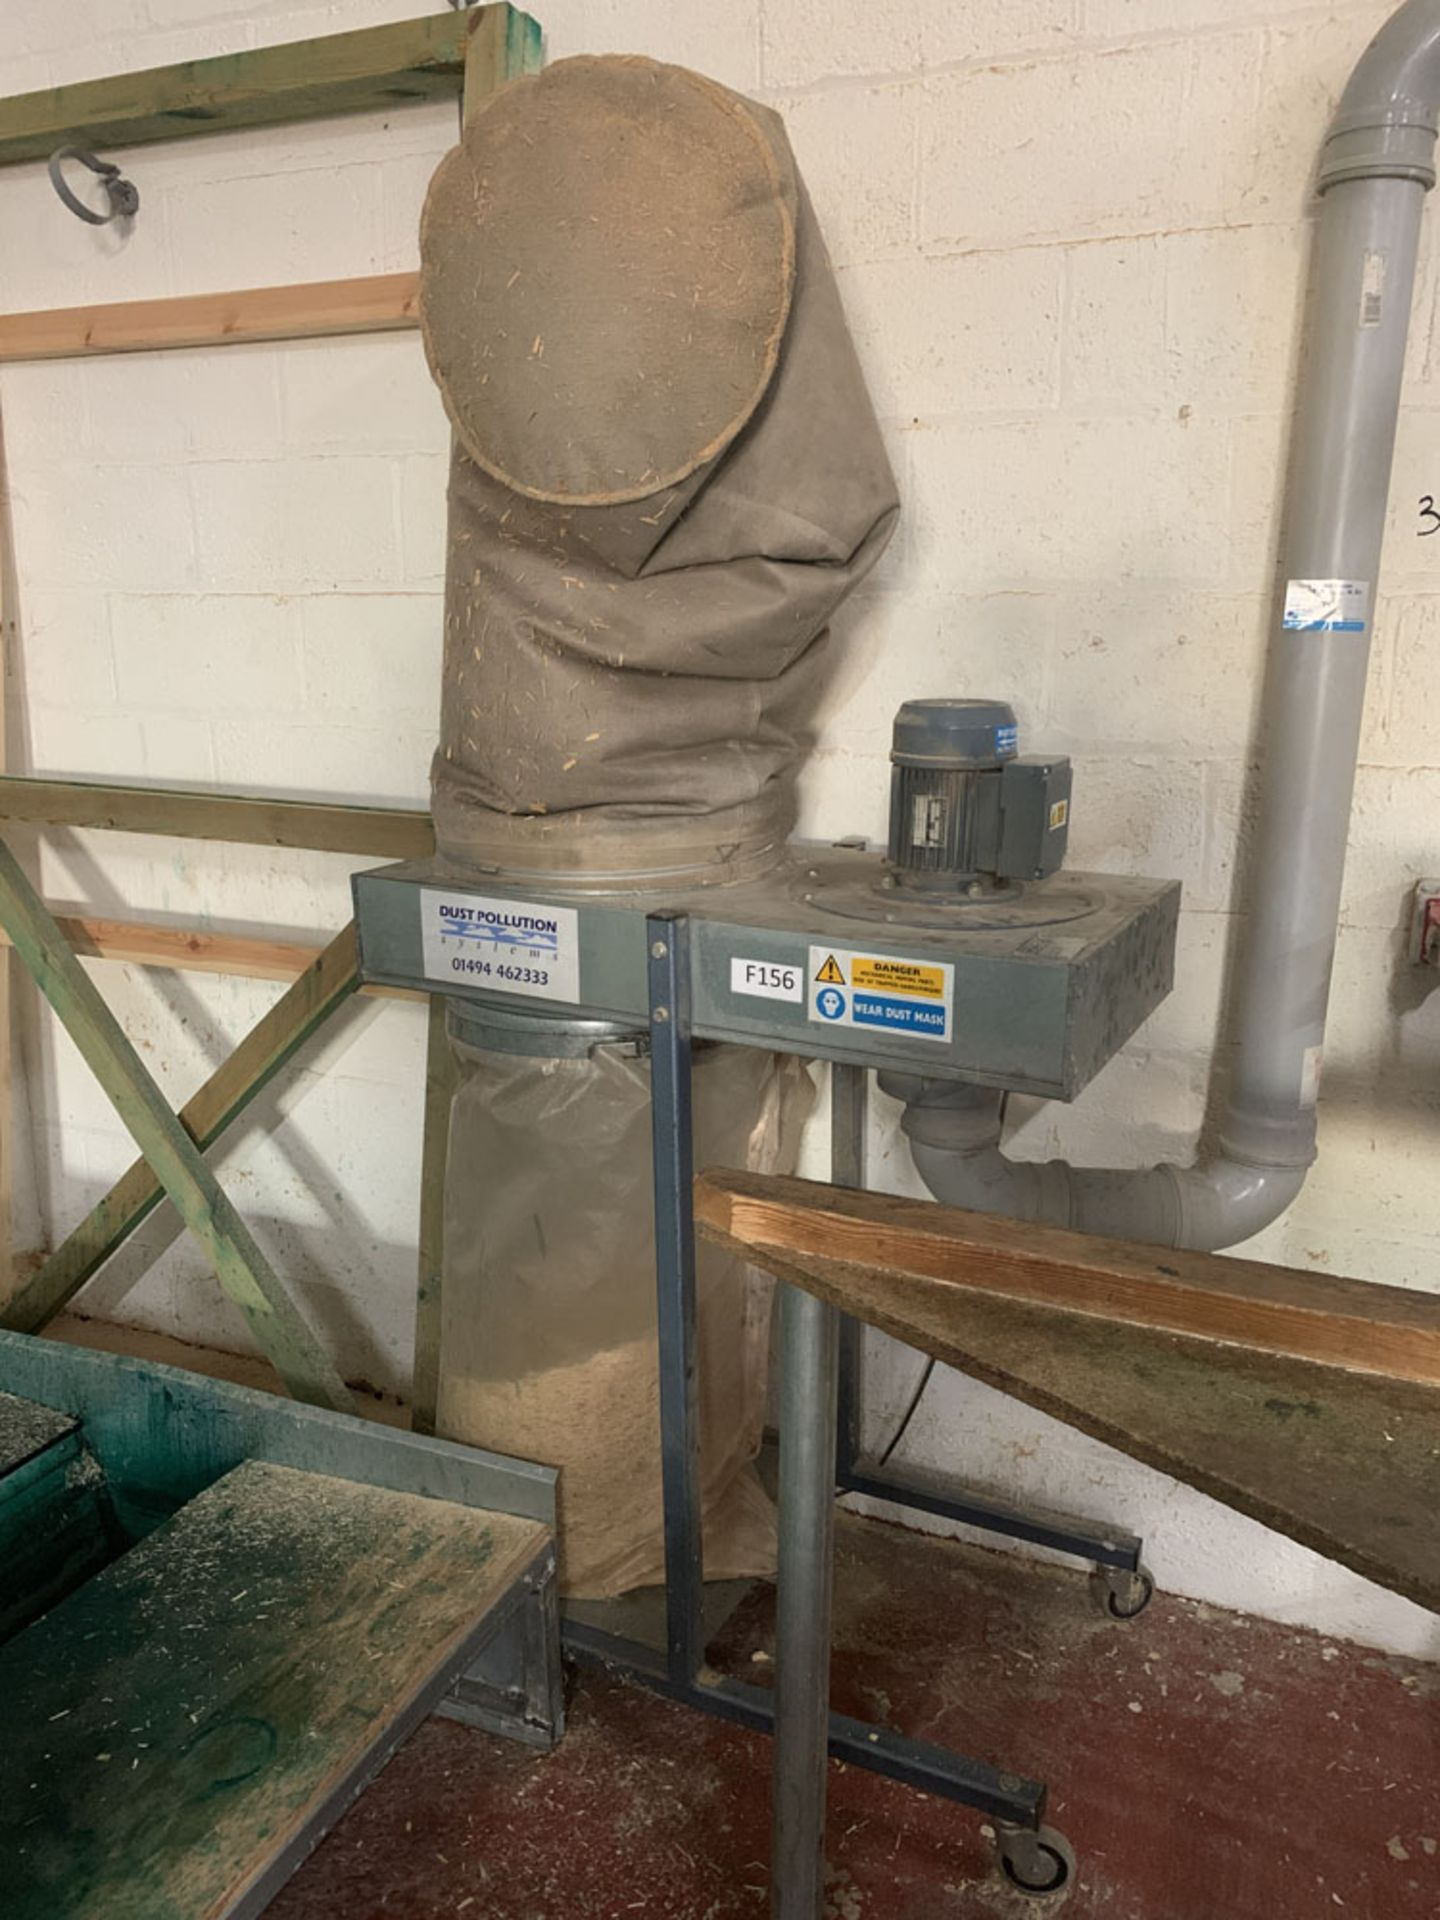 Lot 36 - Dust Pollution Systems Limited. Single Phase Mobile Dust Extractor for Wood